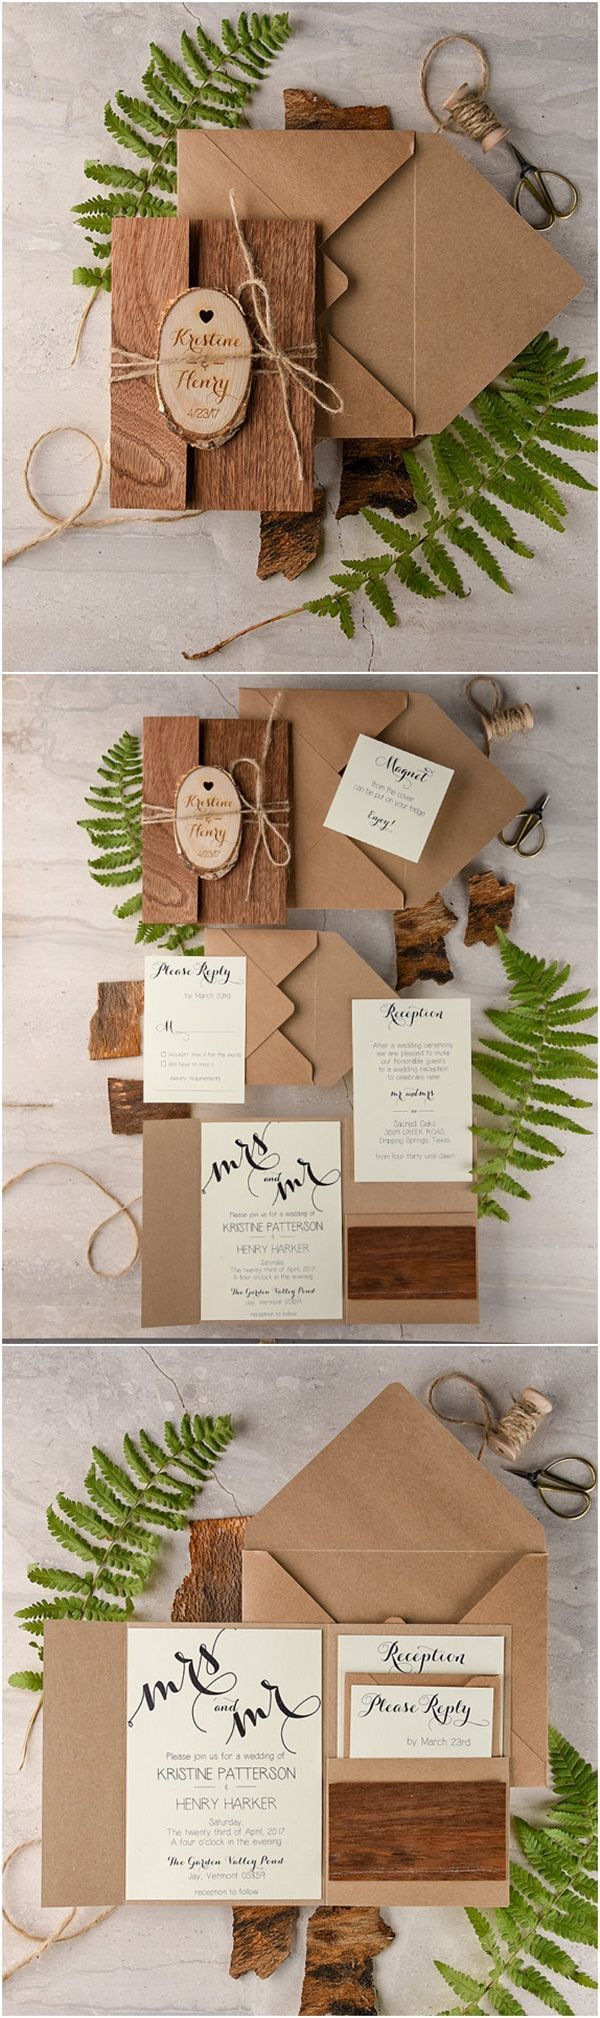 Recycled Eco Rustic Real Wood Wedding Invitations